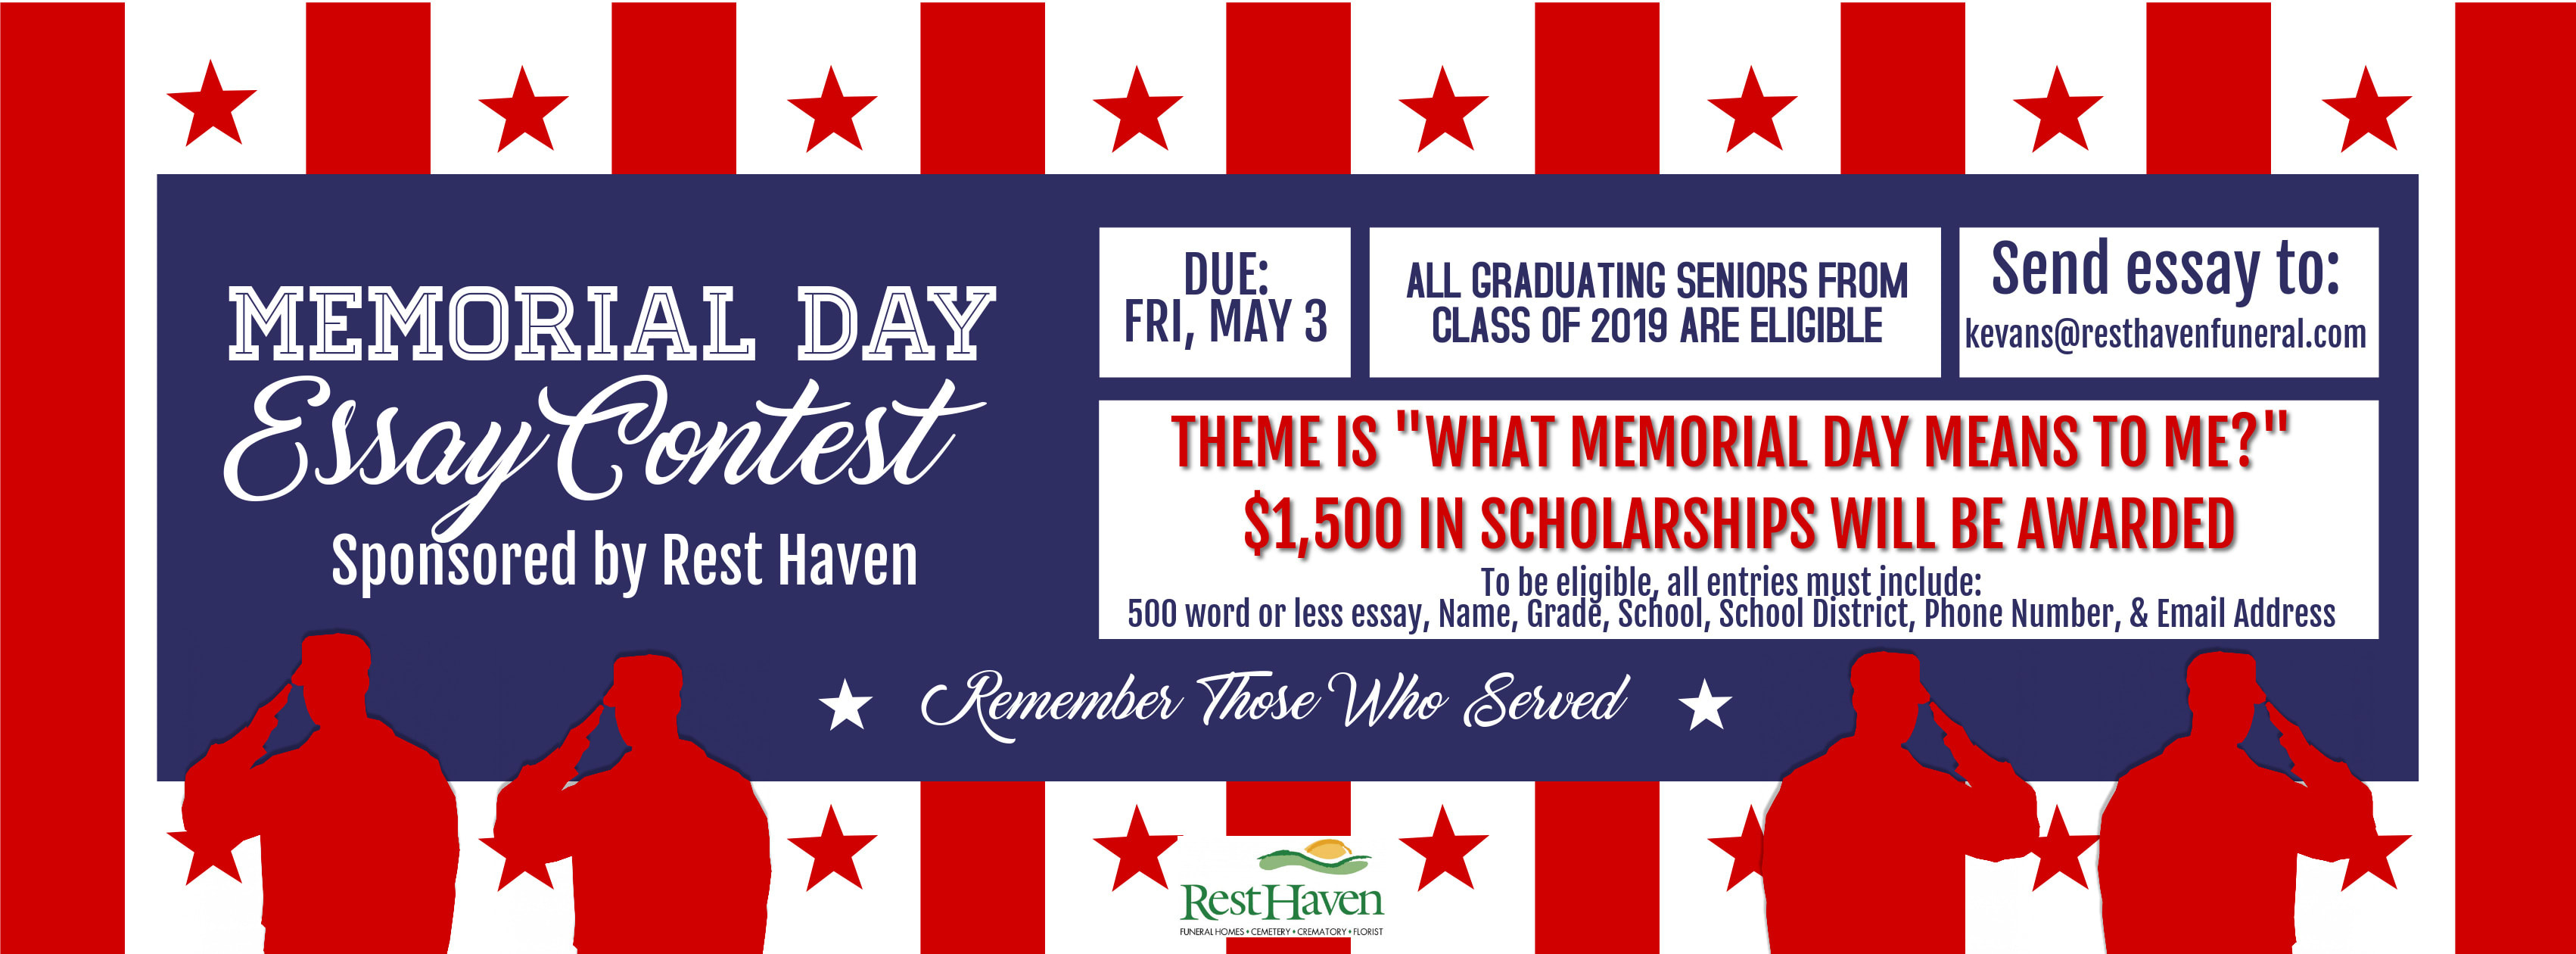 memorial day  essay contest  rest haven funeral home   rockwall tx open to all graduating high school seniors from the class of  please  share with all high school seniors that might be interested